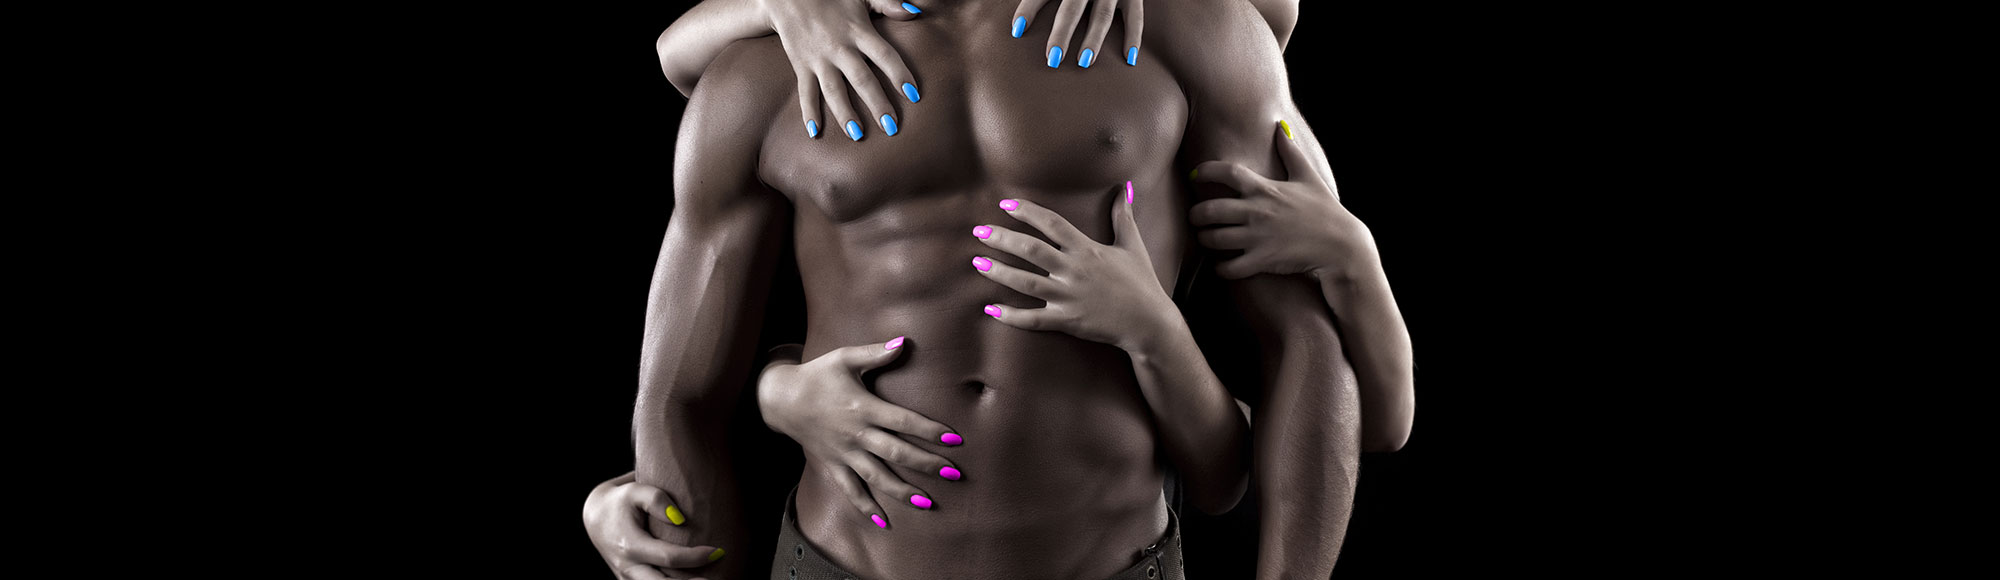 Rock Candy: Male Revue show